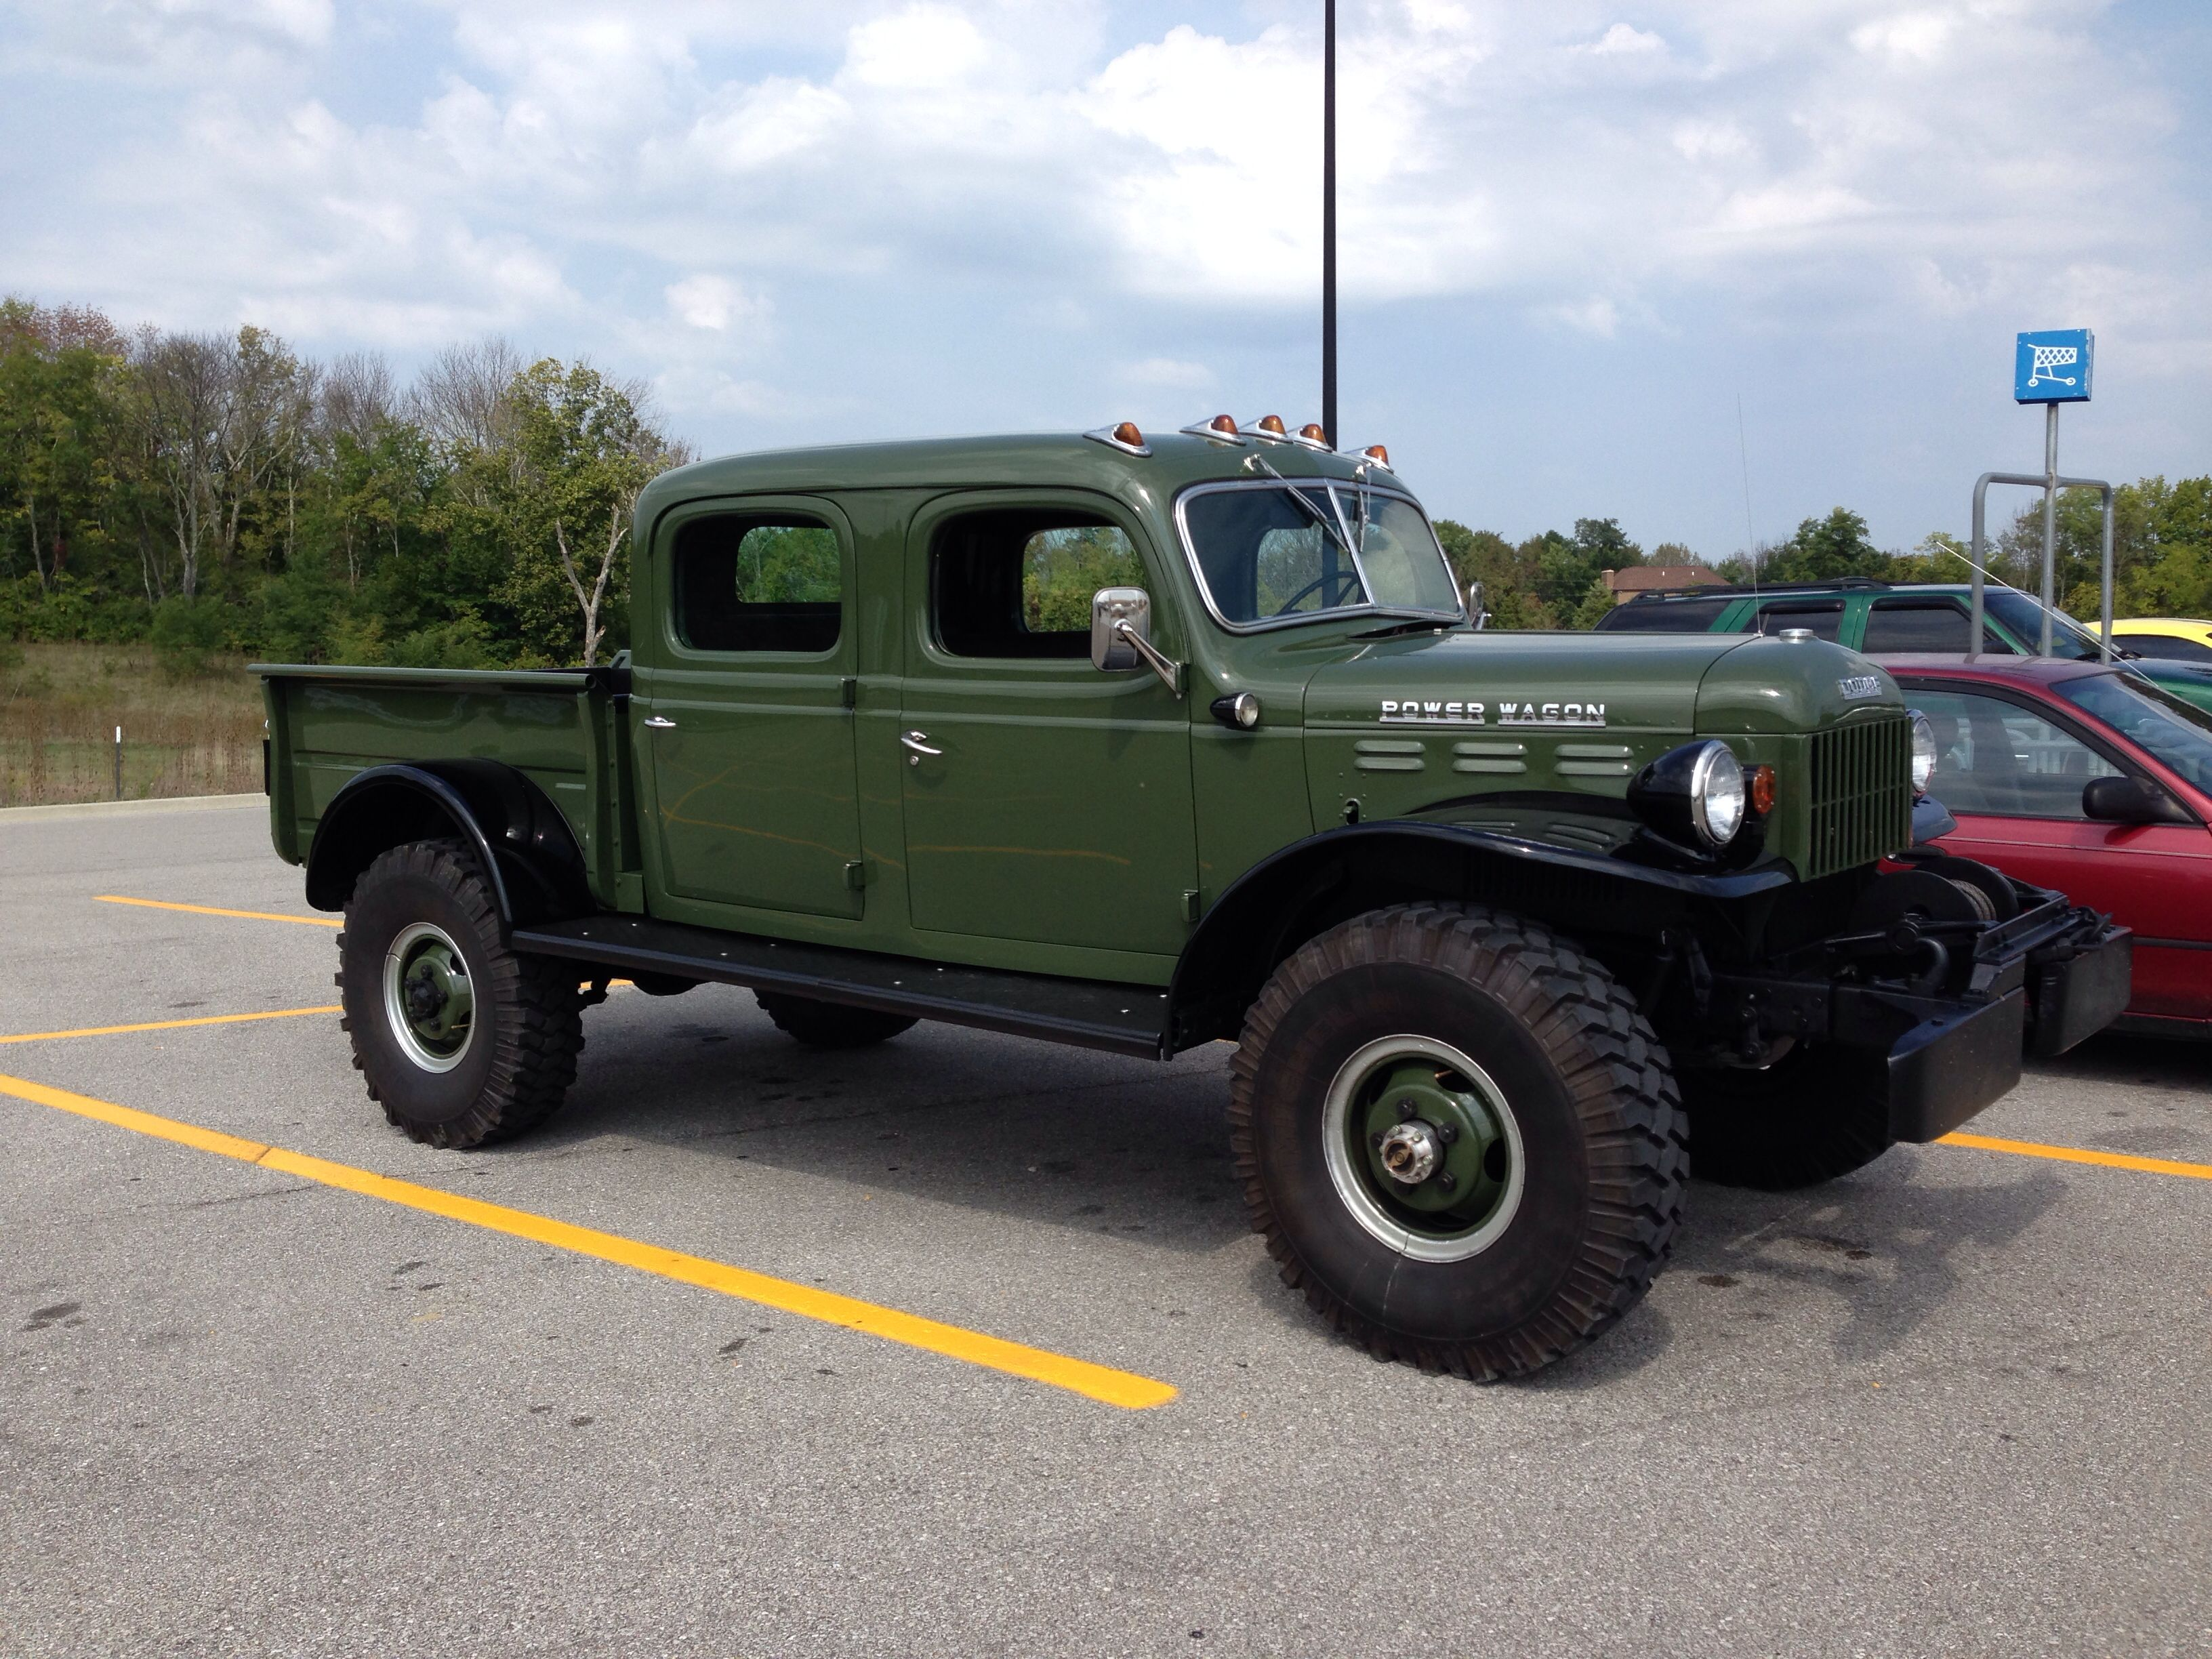 16268 1968 jeep kaiser military m715 m   715 truck 4x4 1 1  4 ton five quarter additionally Dodge Power Wagon 1946 1969 Photo 03 as well 54783 besides 1973 Dodge Coro  Pictures C6551 also Powerwagon. on 1948 dodge power wagon